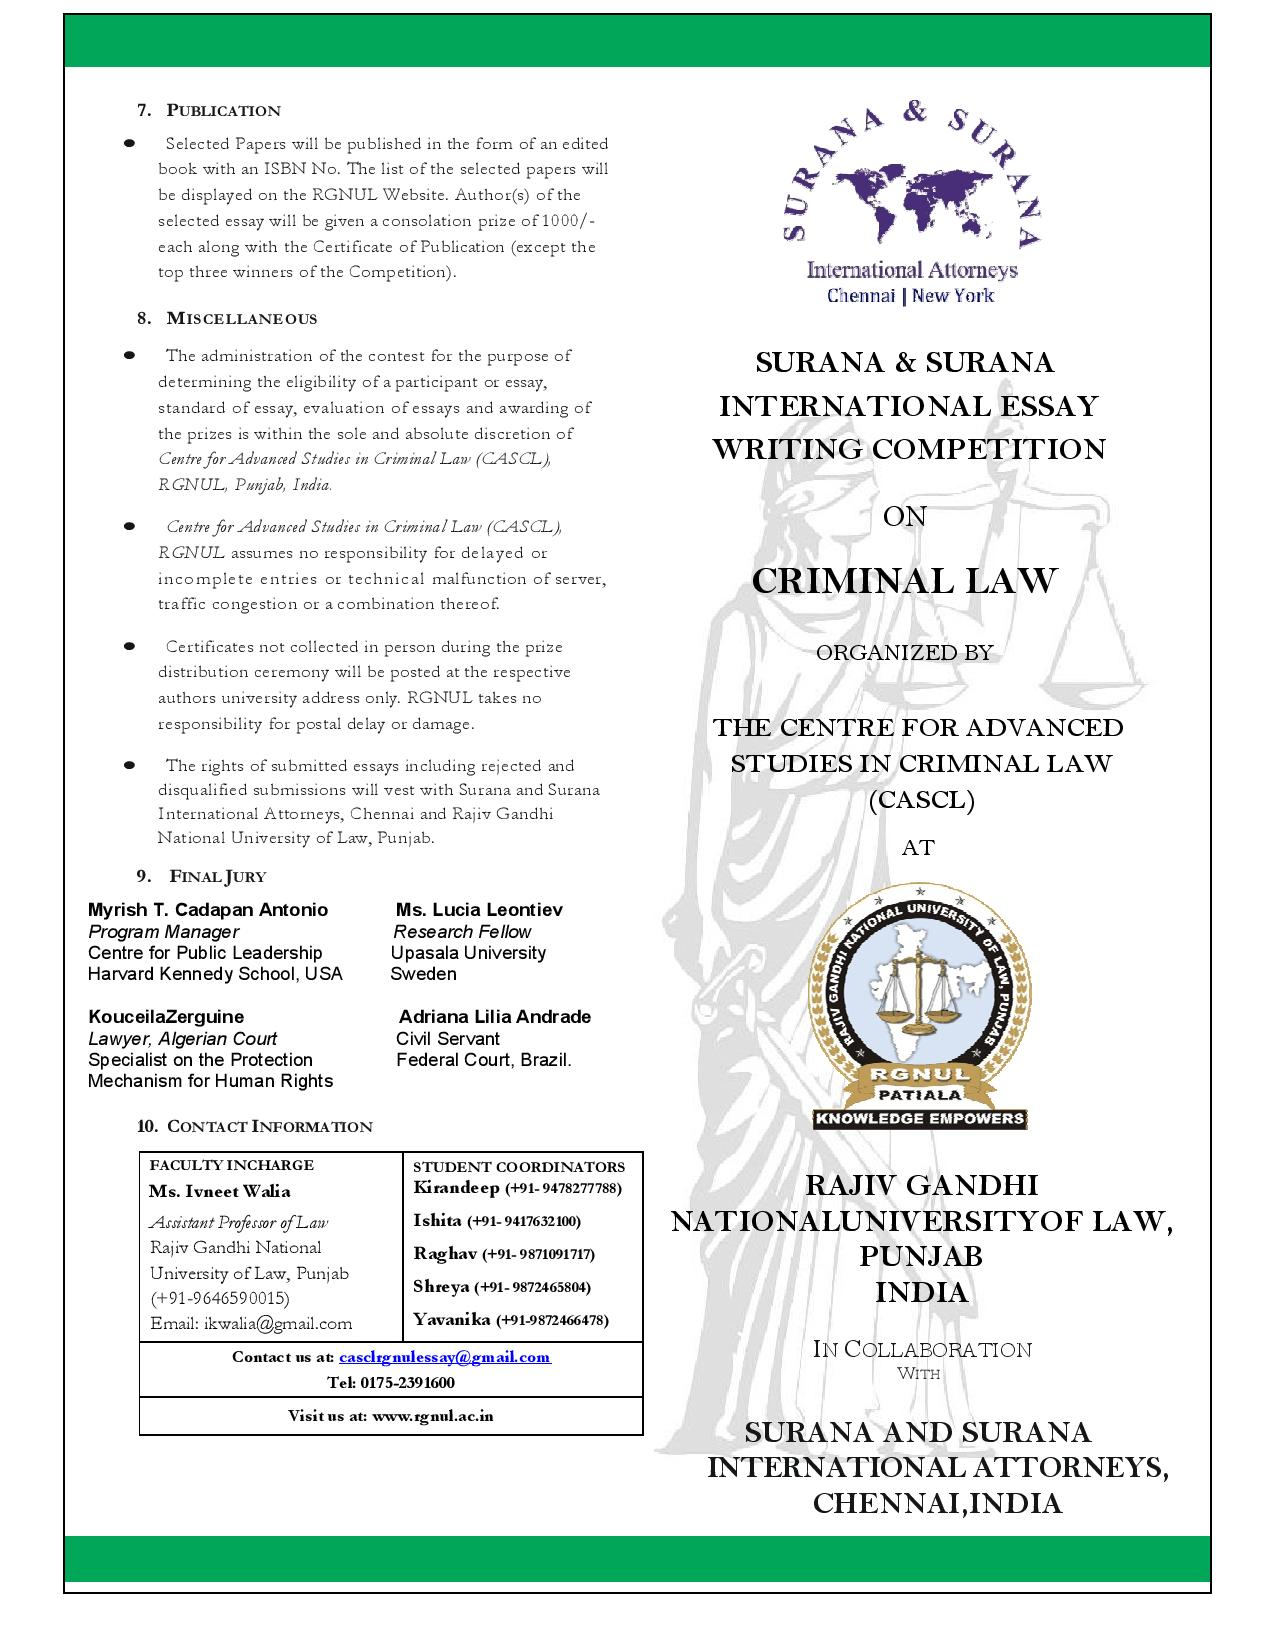 RGNUL's Surana & Surana International Essay Writing Competition on Criminal Law